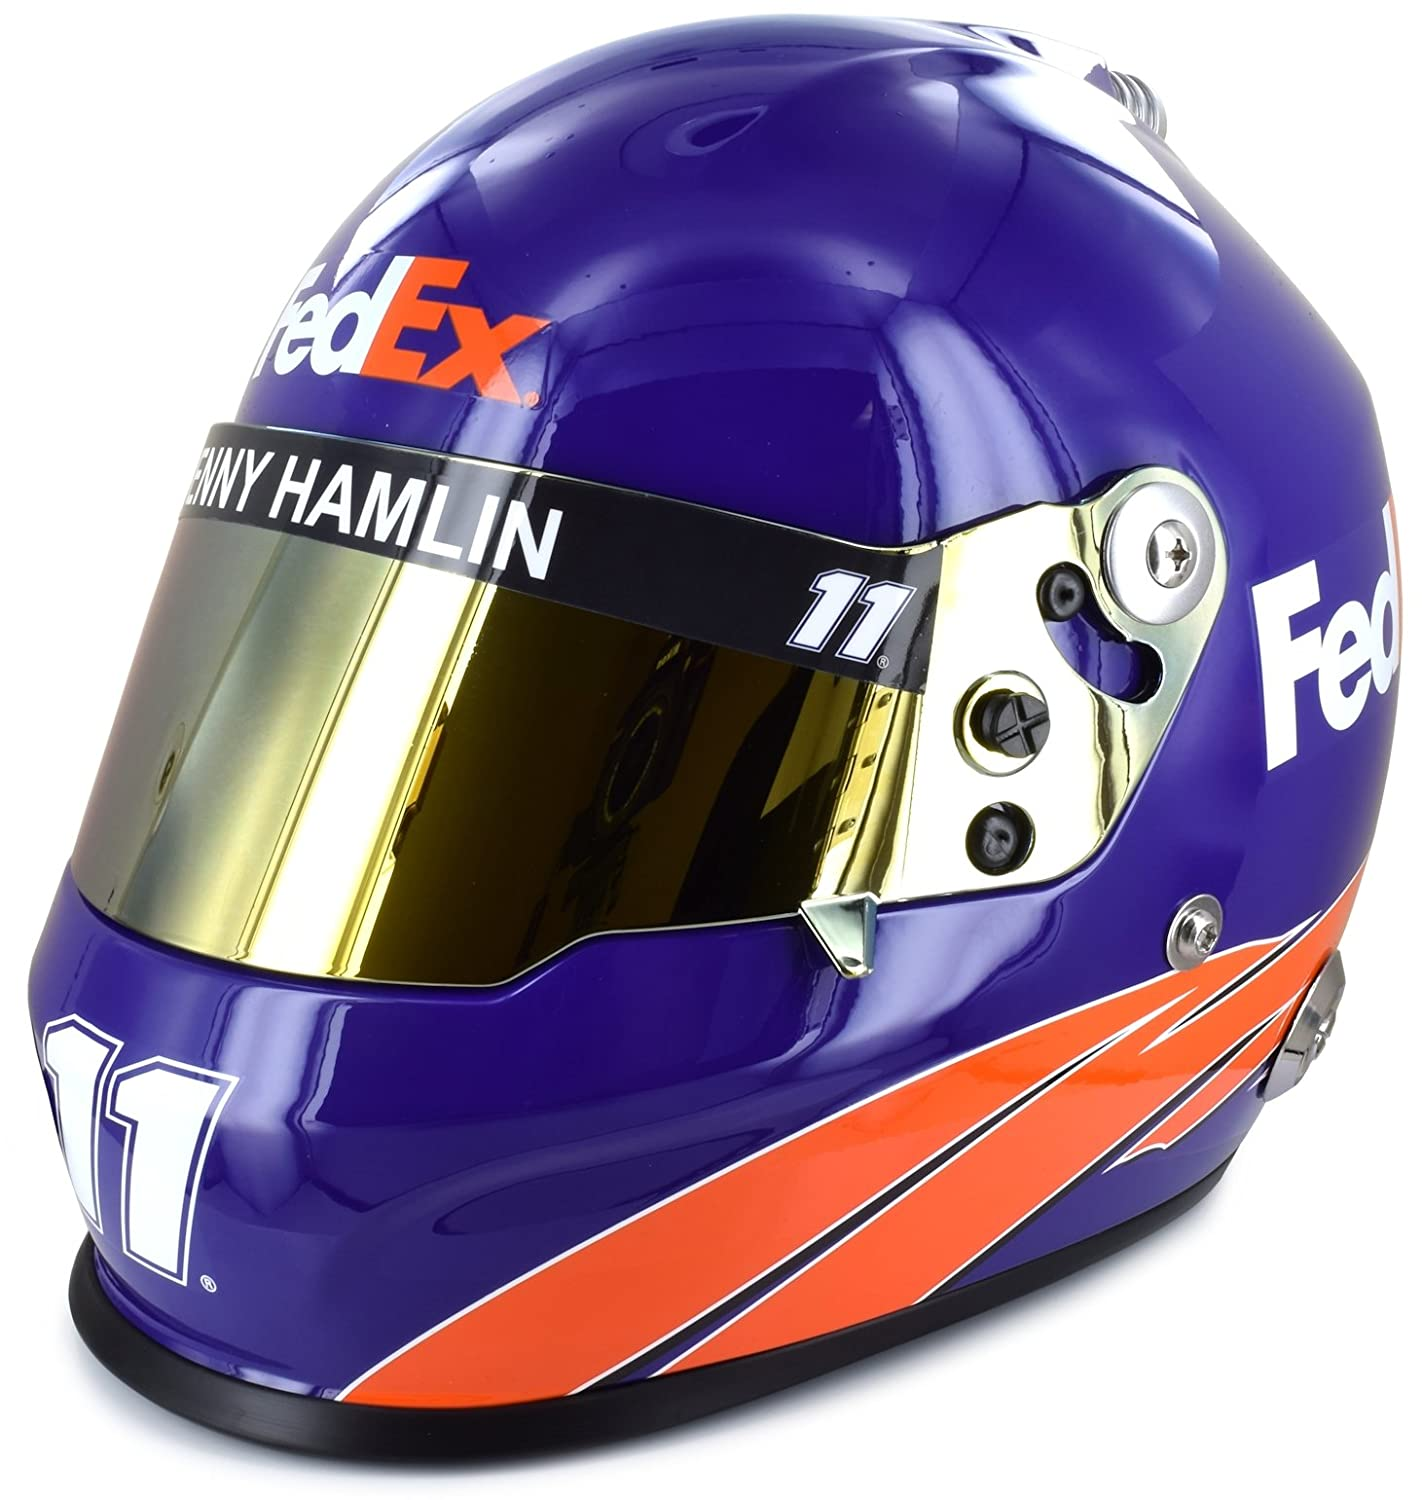 Denny Hamlin Full Size FedEx Collectible NASCAR Replica Helmet